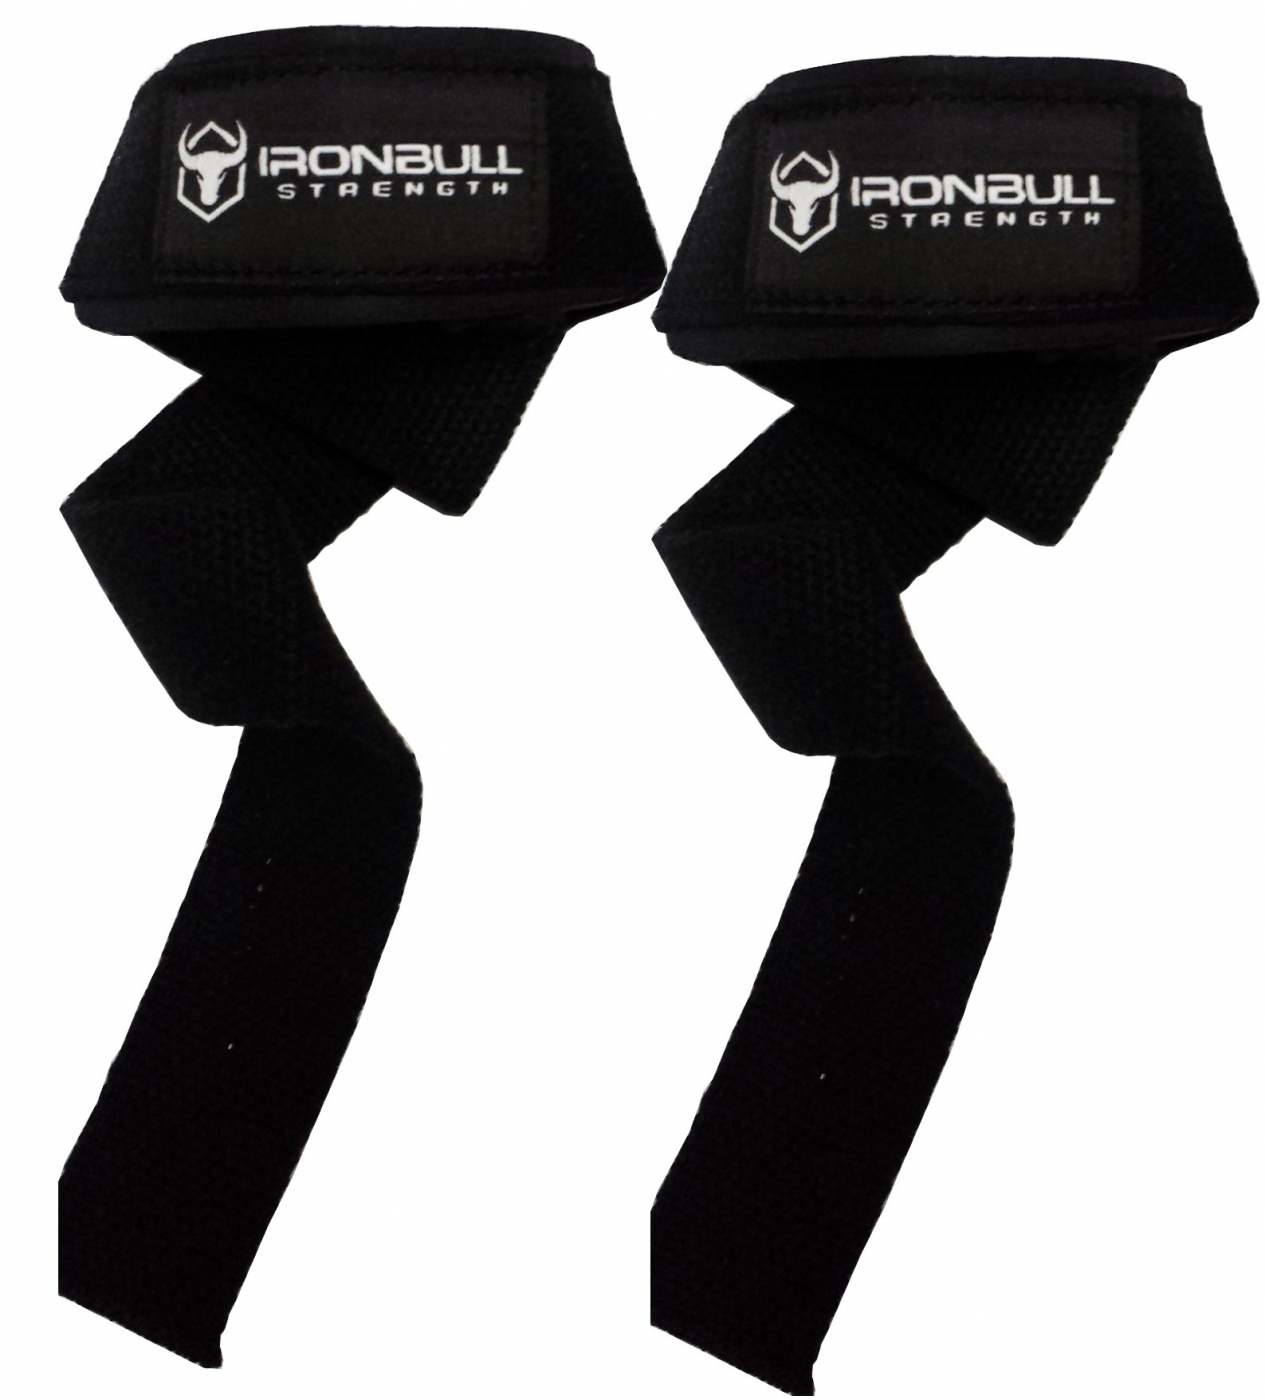 Wrist Wraps Lifting Straps Combo Ironbull Strength